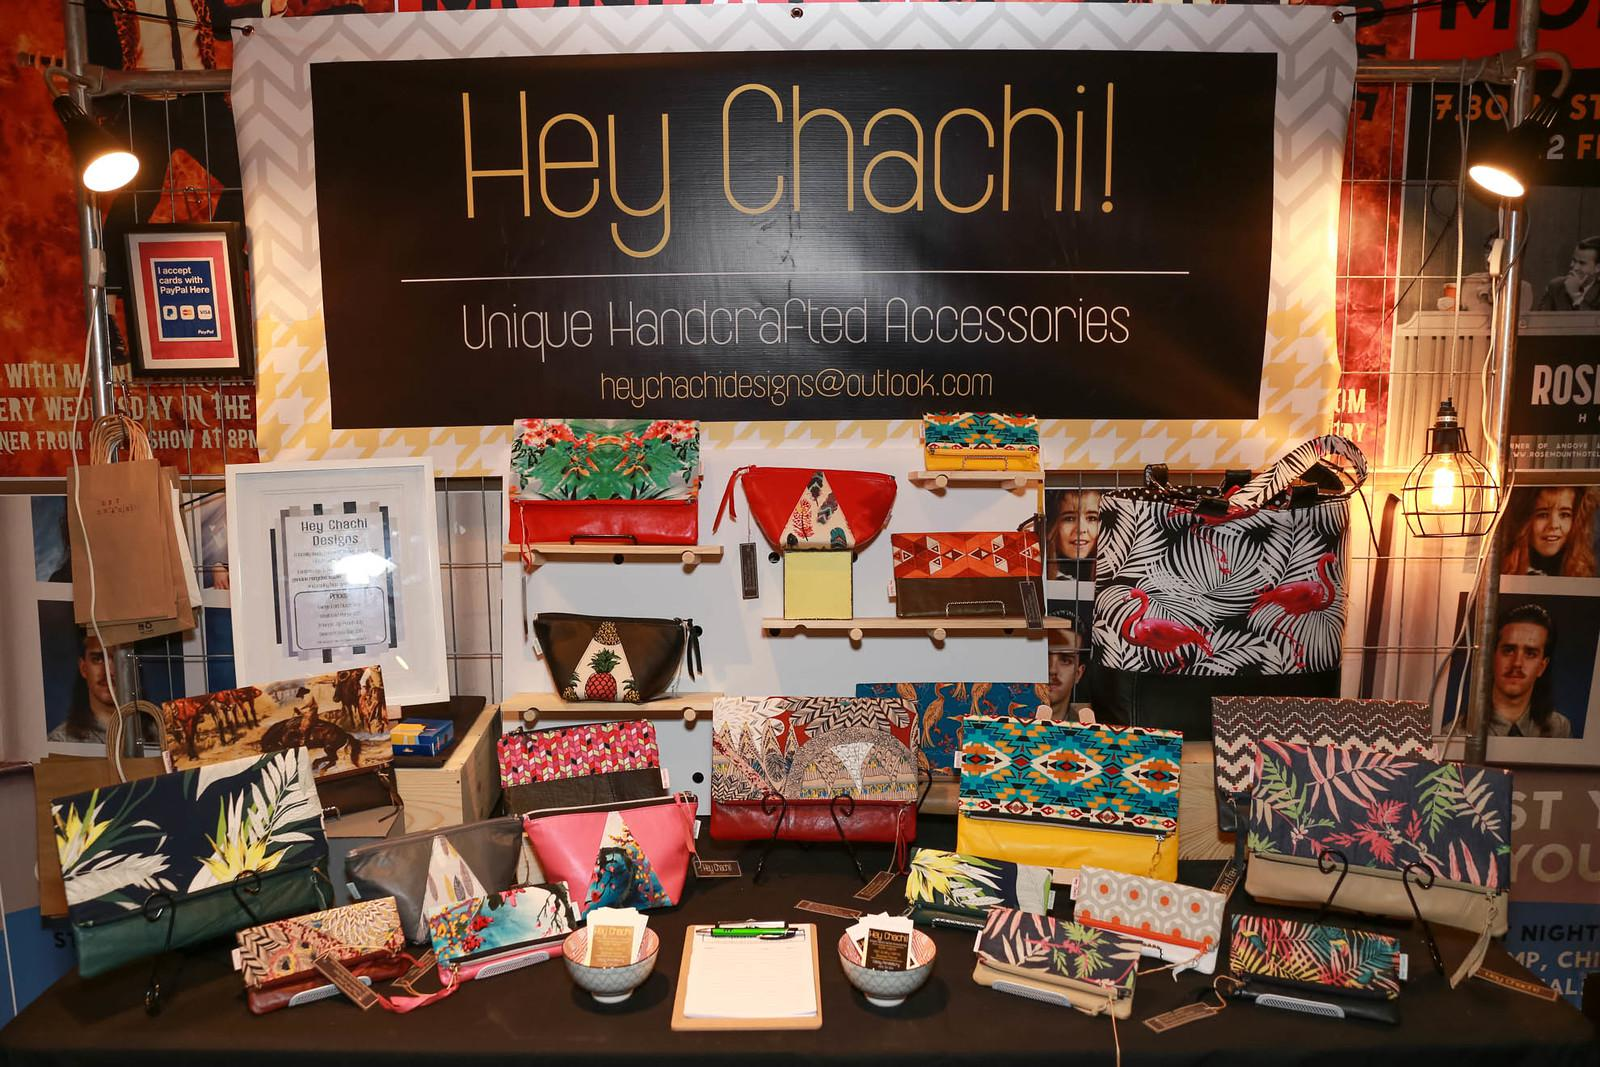 Hey Chachi! Stall display